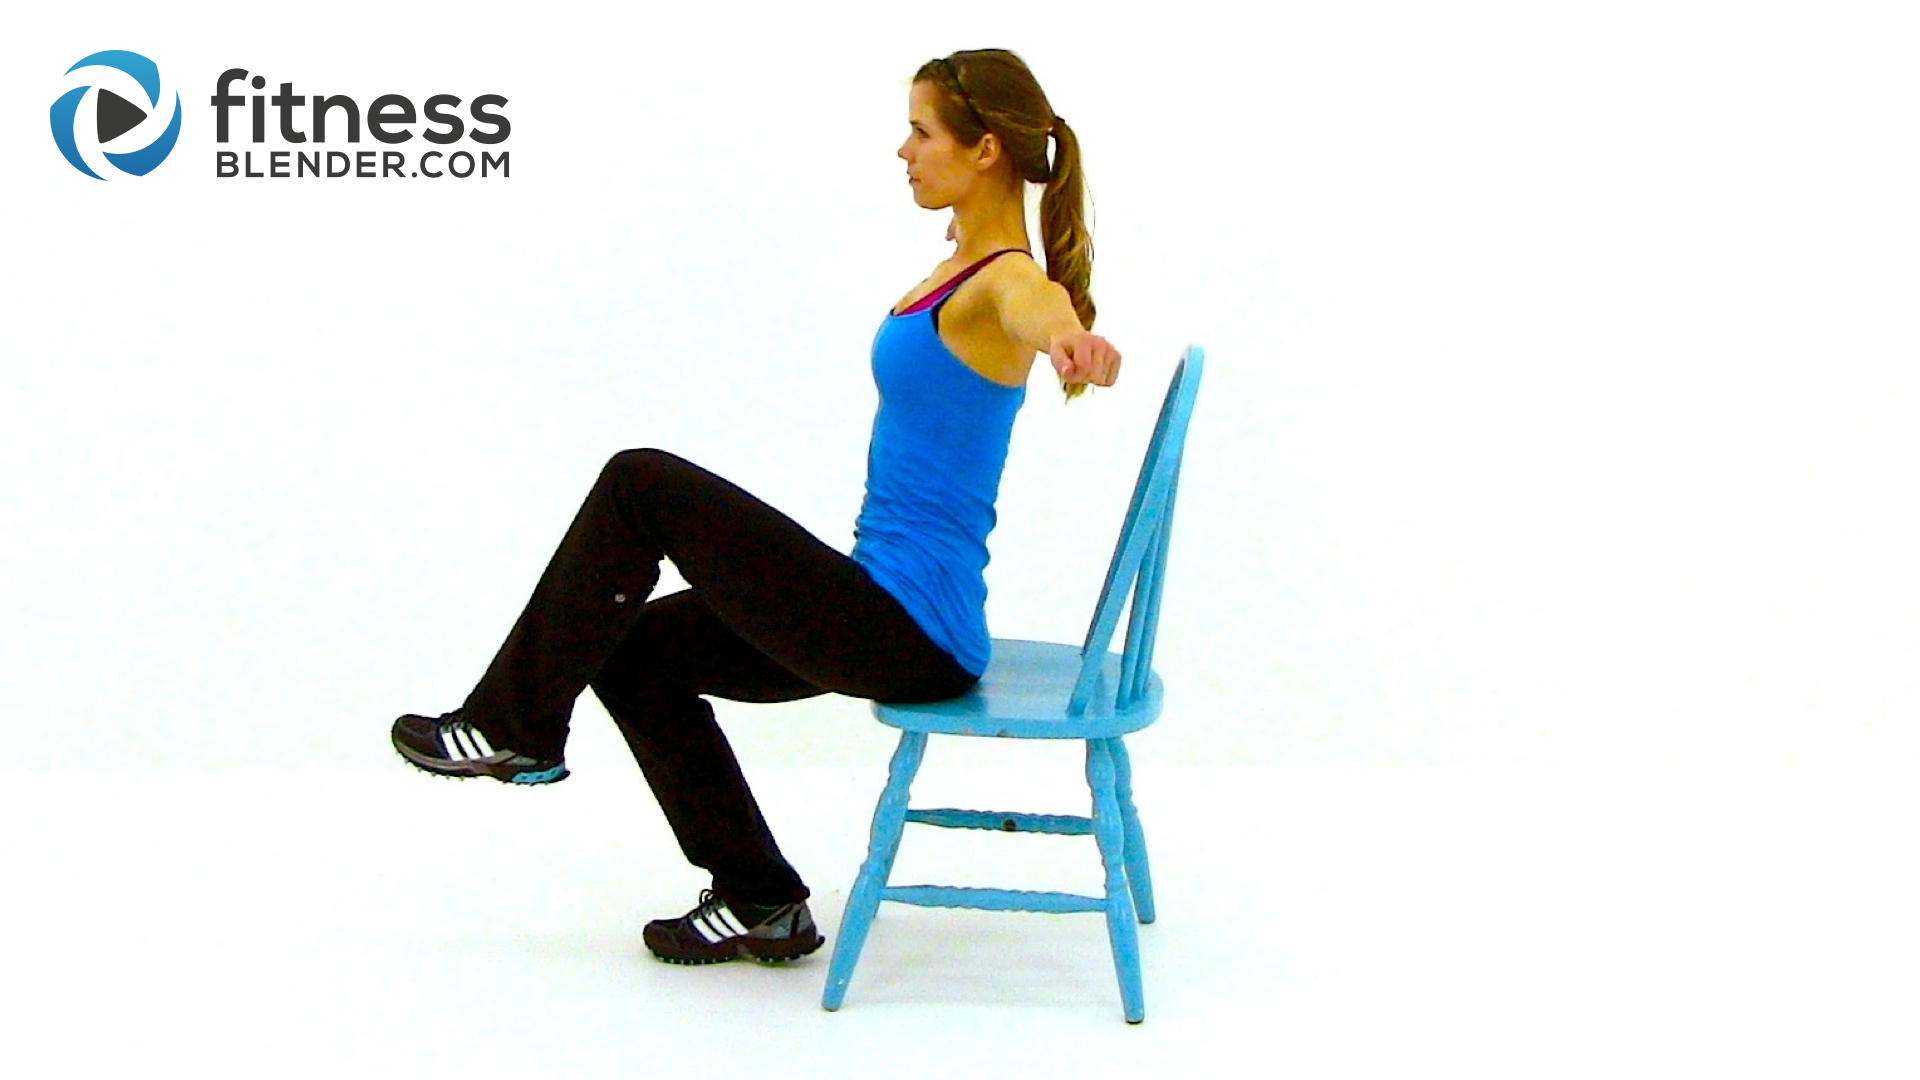 Exercise Chairs Workout At Work 32 Minute Chair Workout Video Fitness